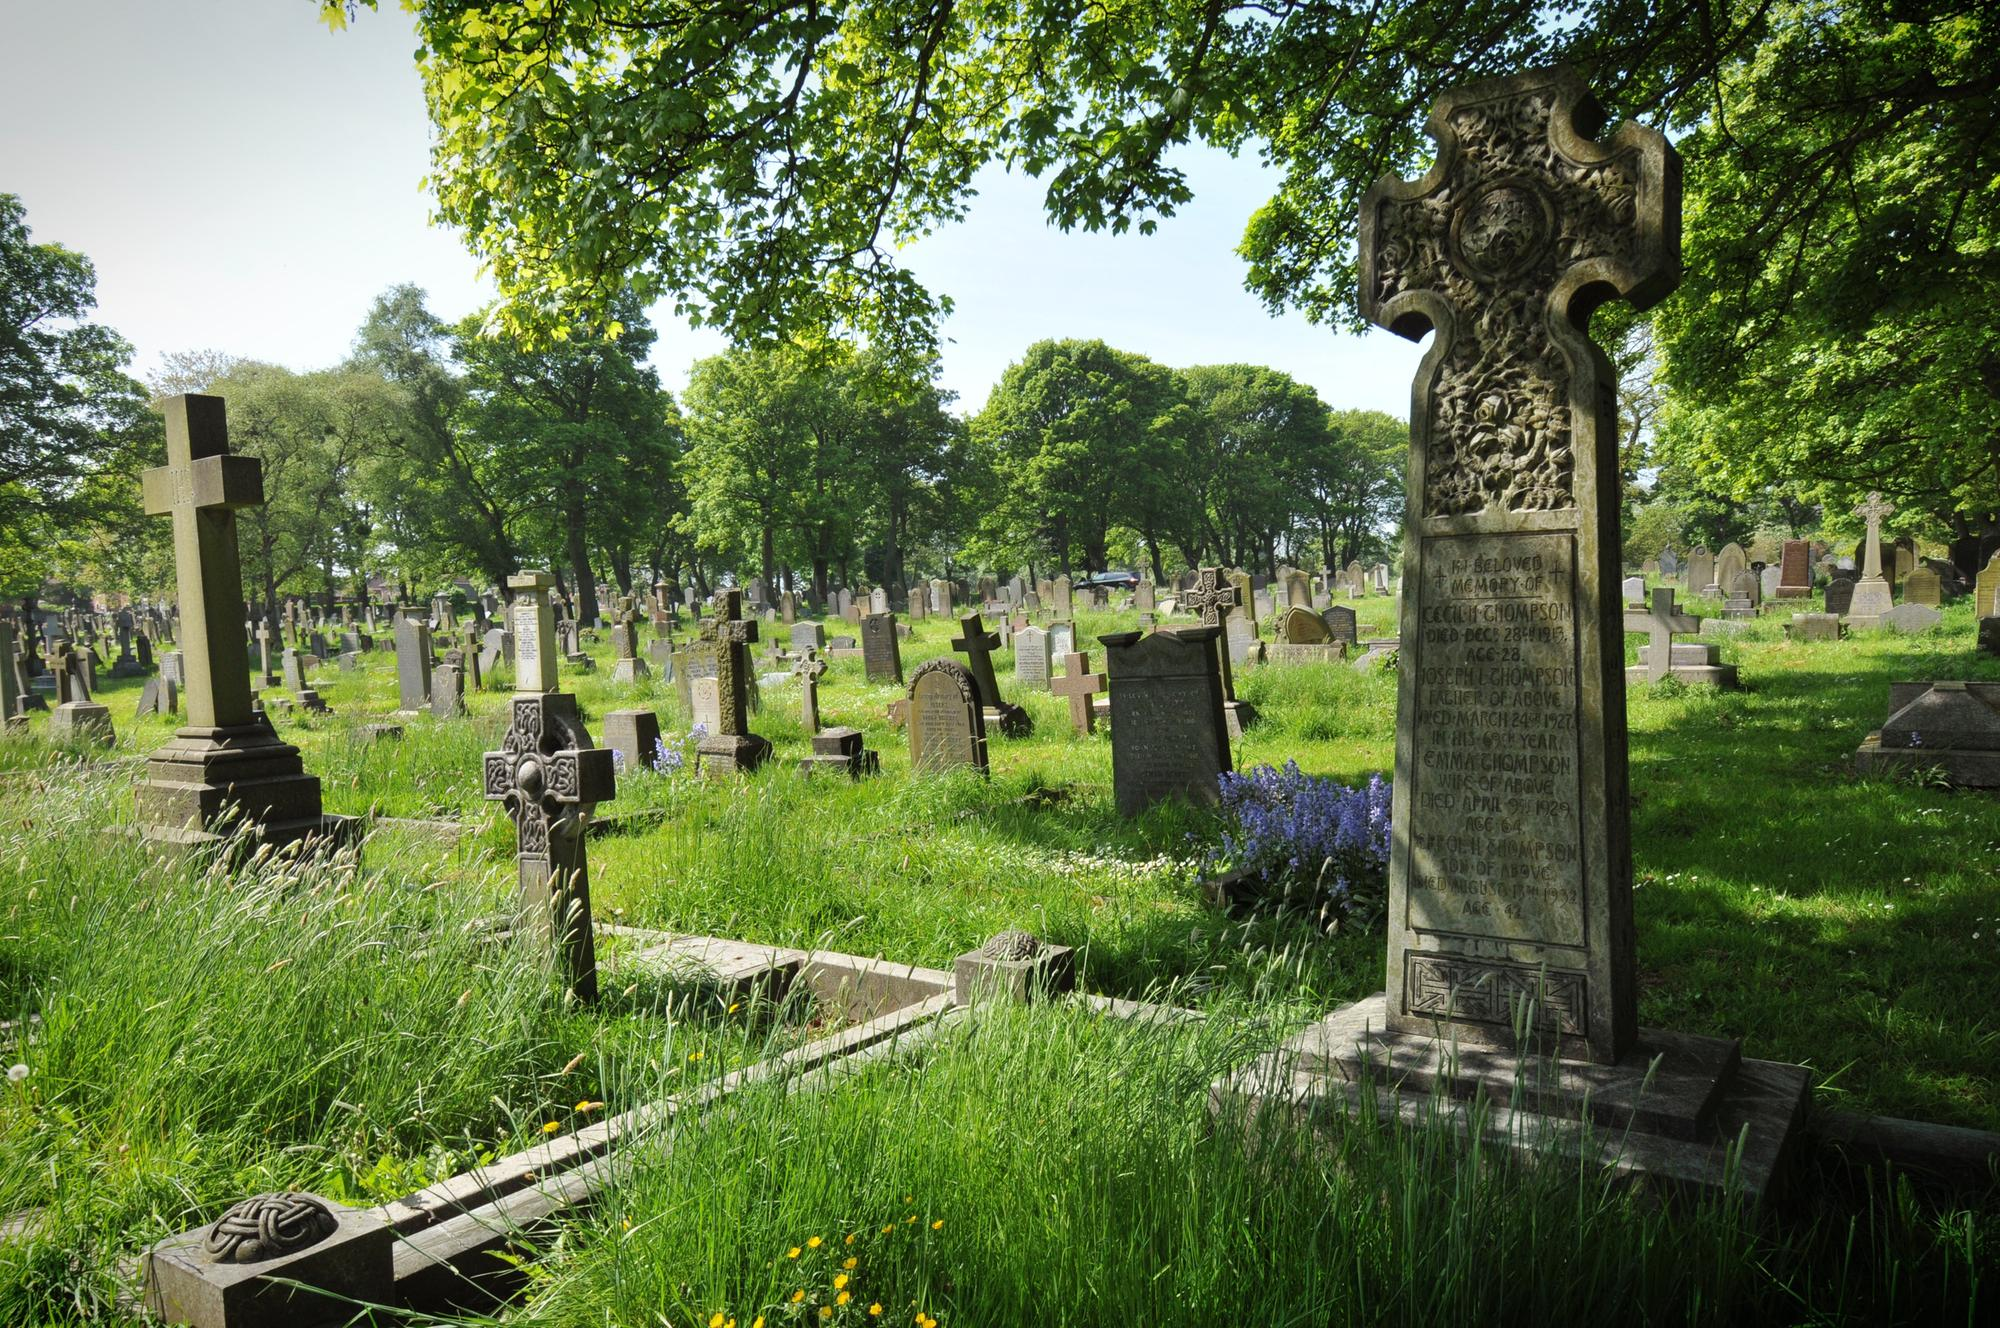 Sunderland murder victim is finally buried a century after mystery disappearance